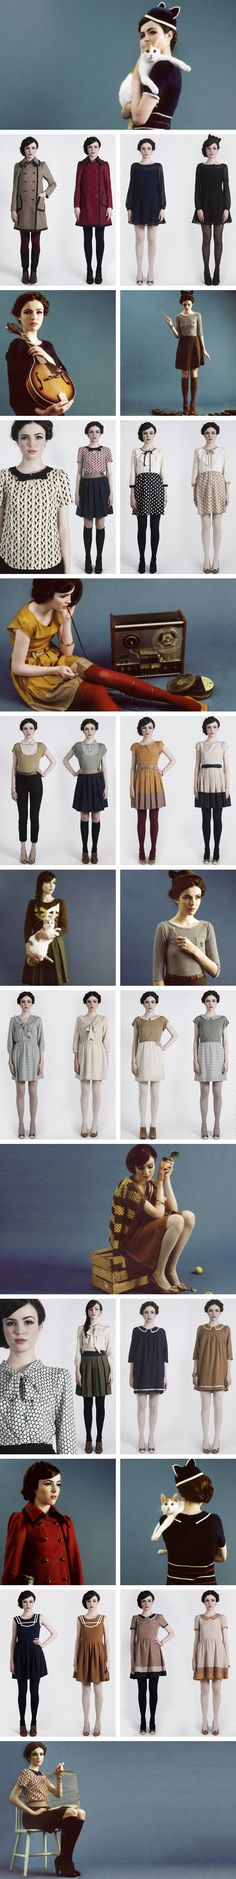 foxinthepine-dearcreatures  pinned this just for those coats at the top left, second row...